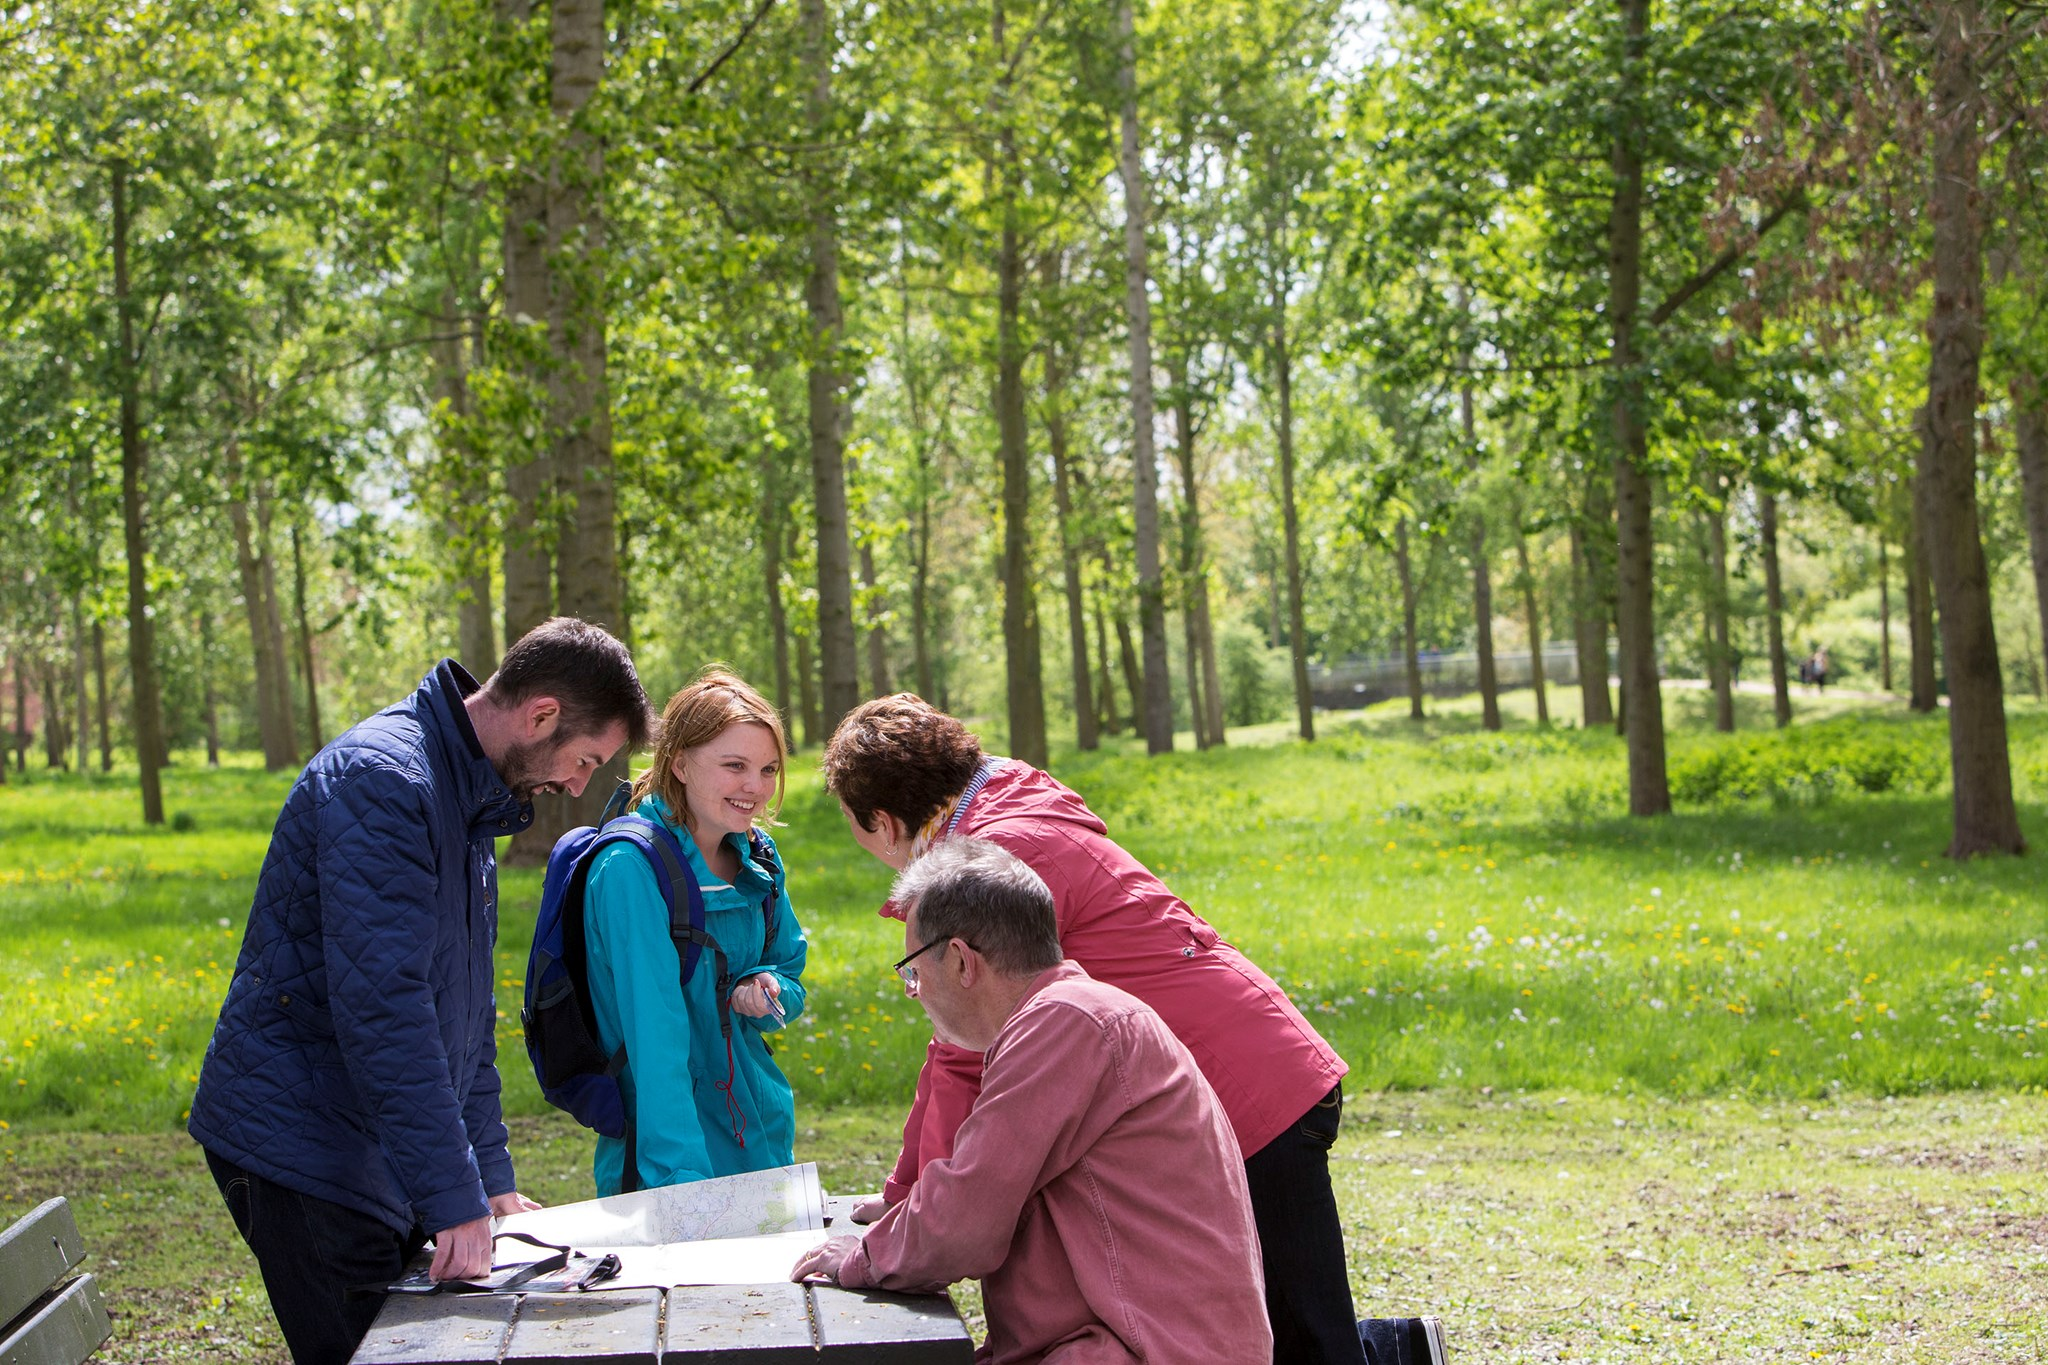 Orienteering-woods-maps-bench-people